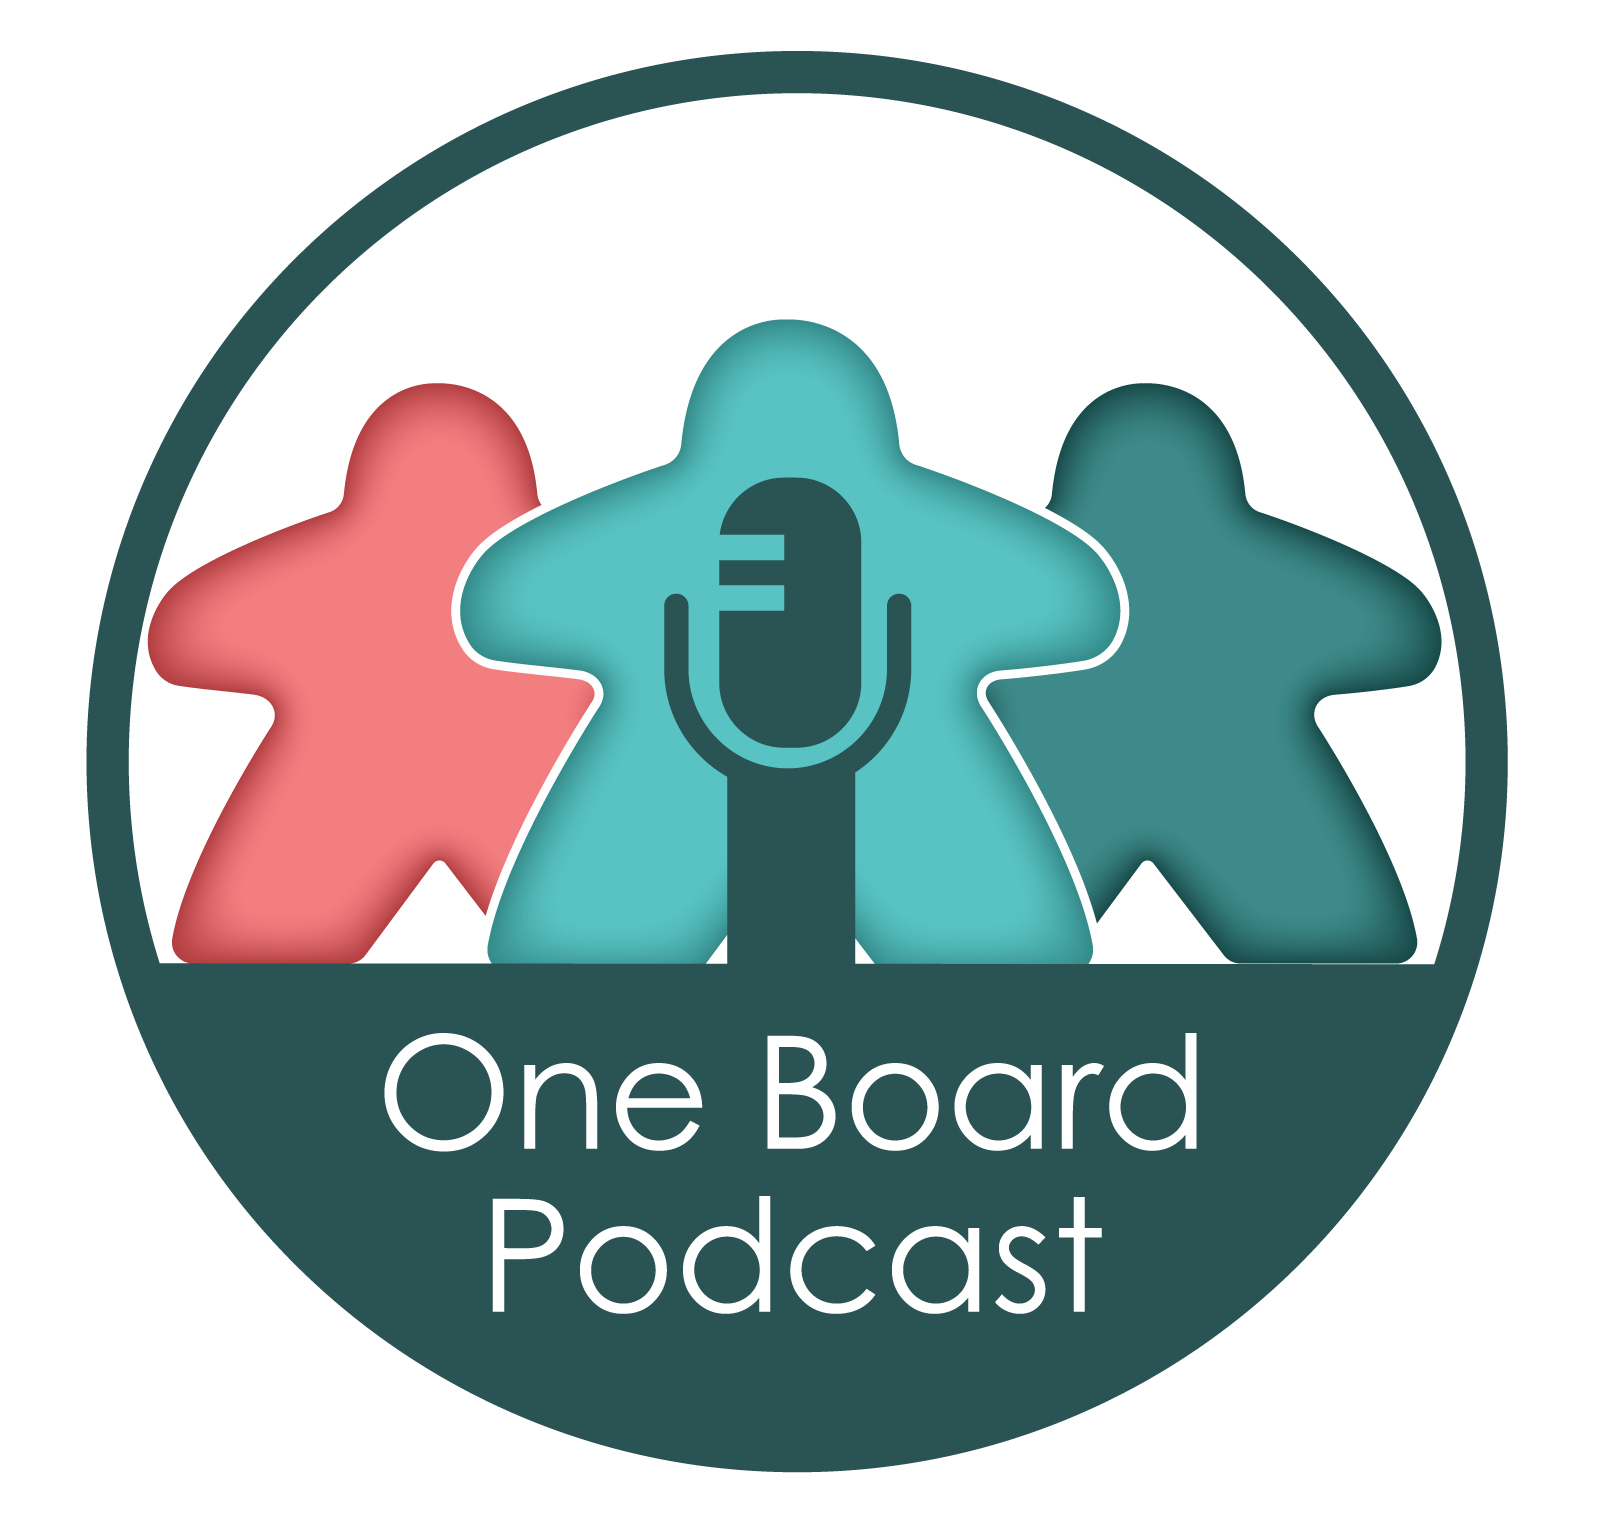 One Board Podcast